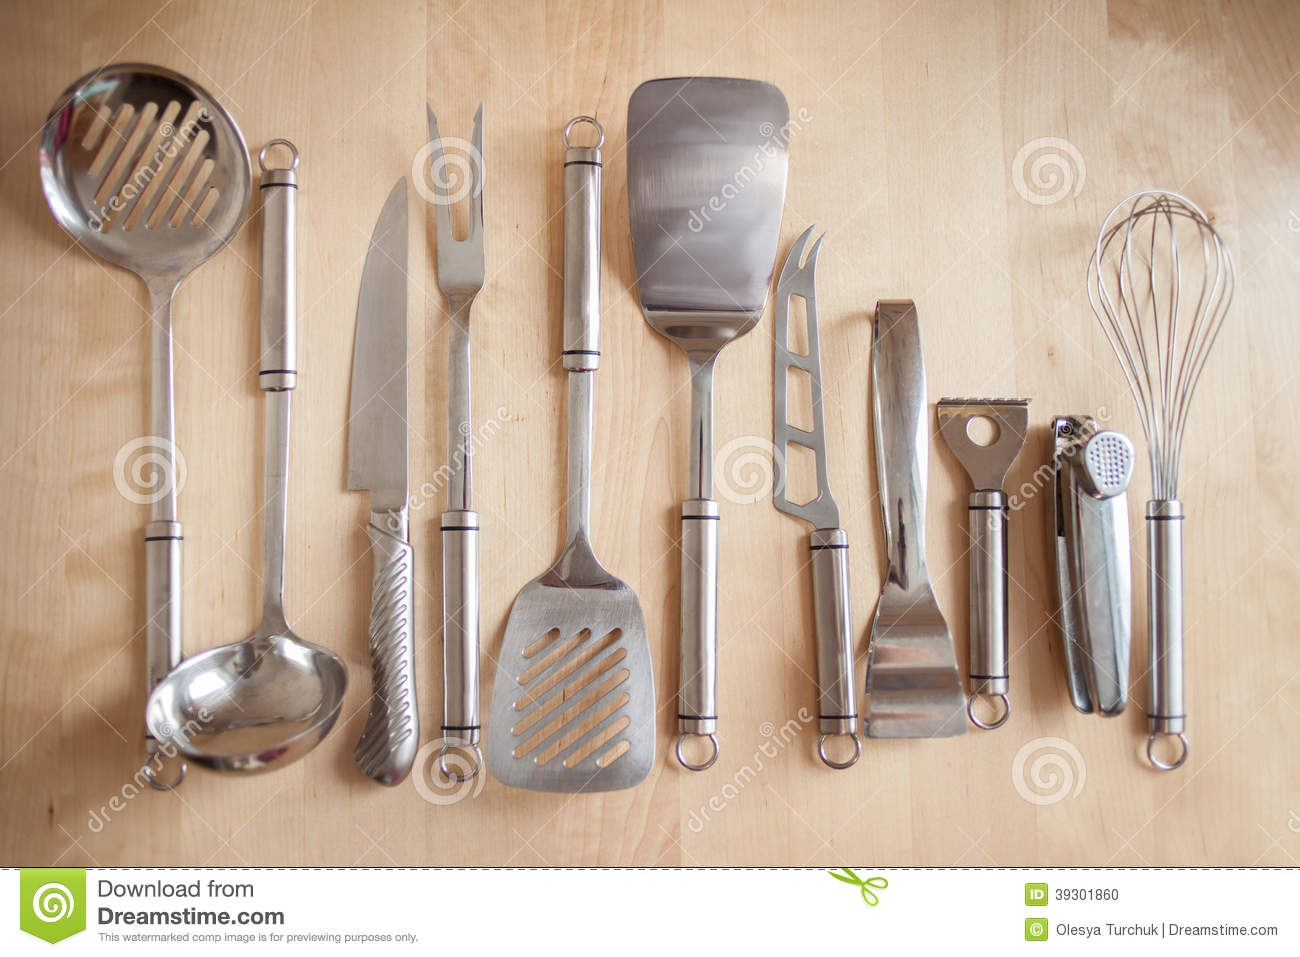 Quipement de cuisine sur la table photo stock image for Equipement de cuisine